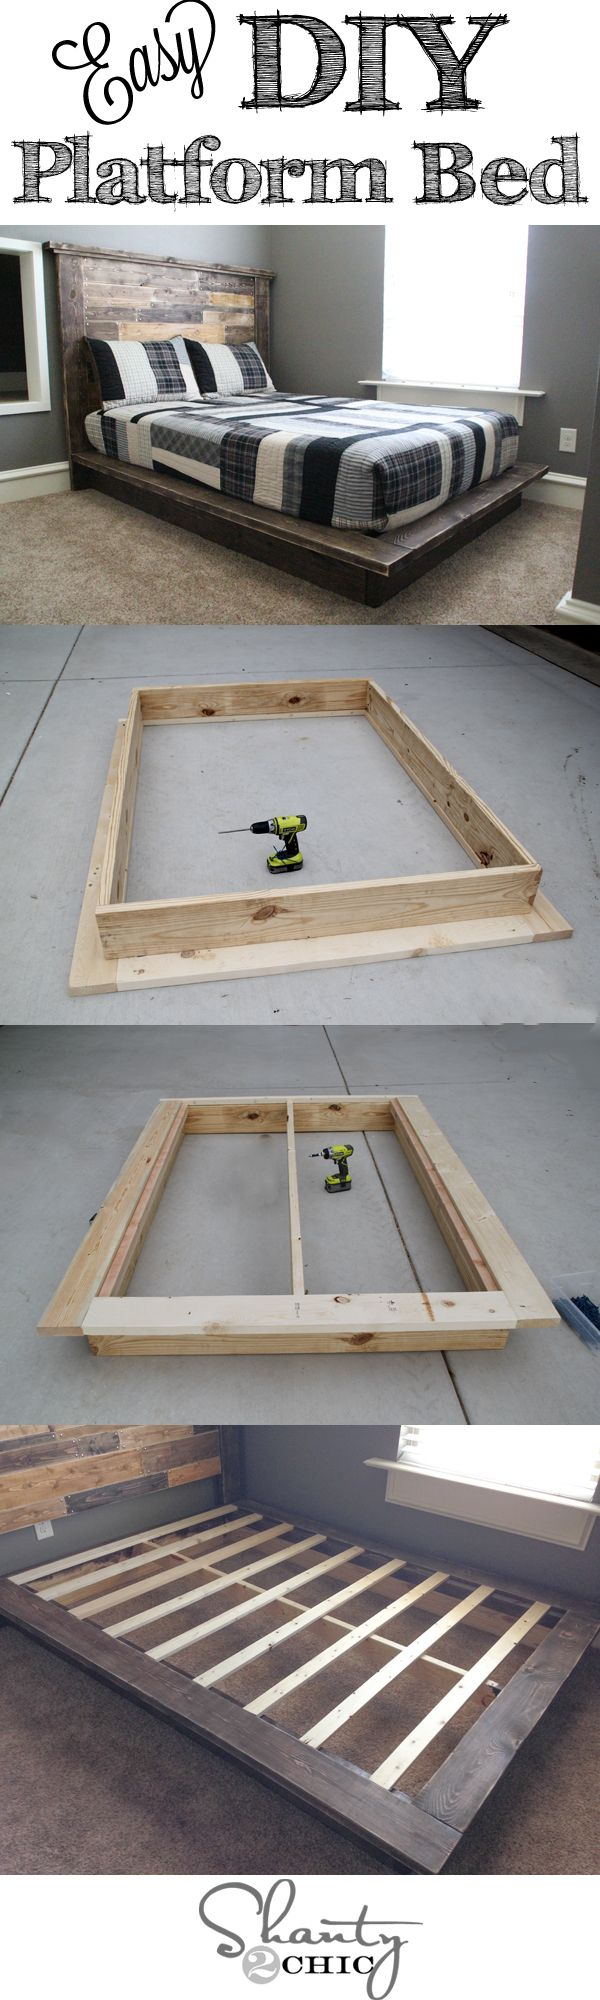 Easy DIY Platform Bed that anyone can build! …We need to build